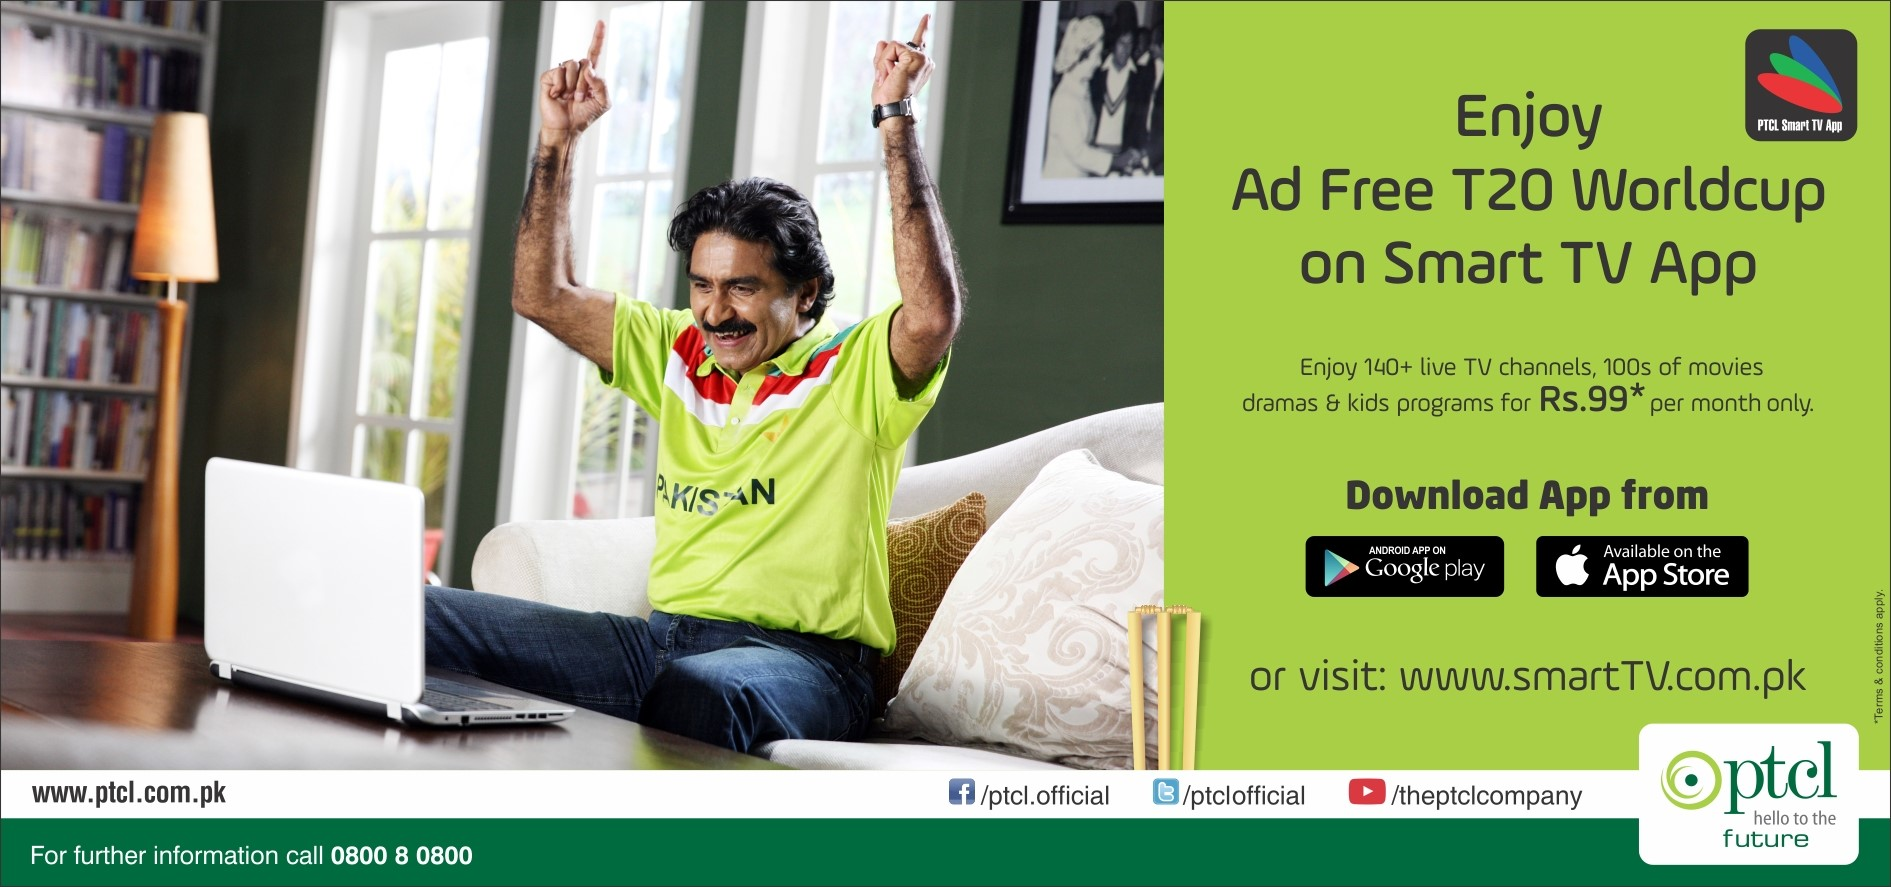 Ad Free ICC T-20 World Cup 2016 on Smart TV App for free